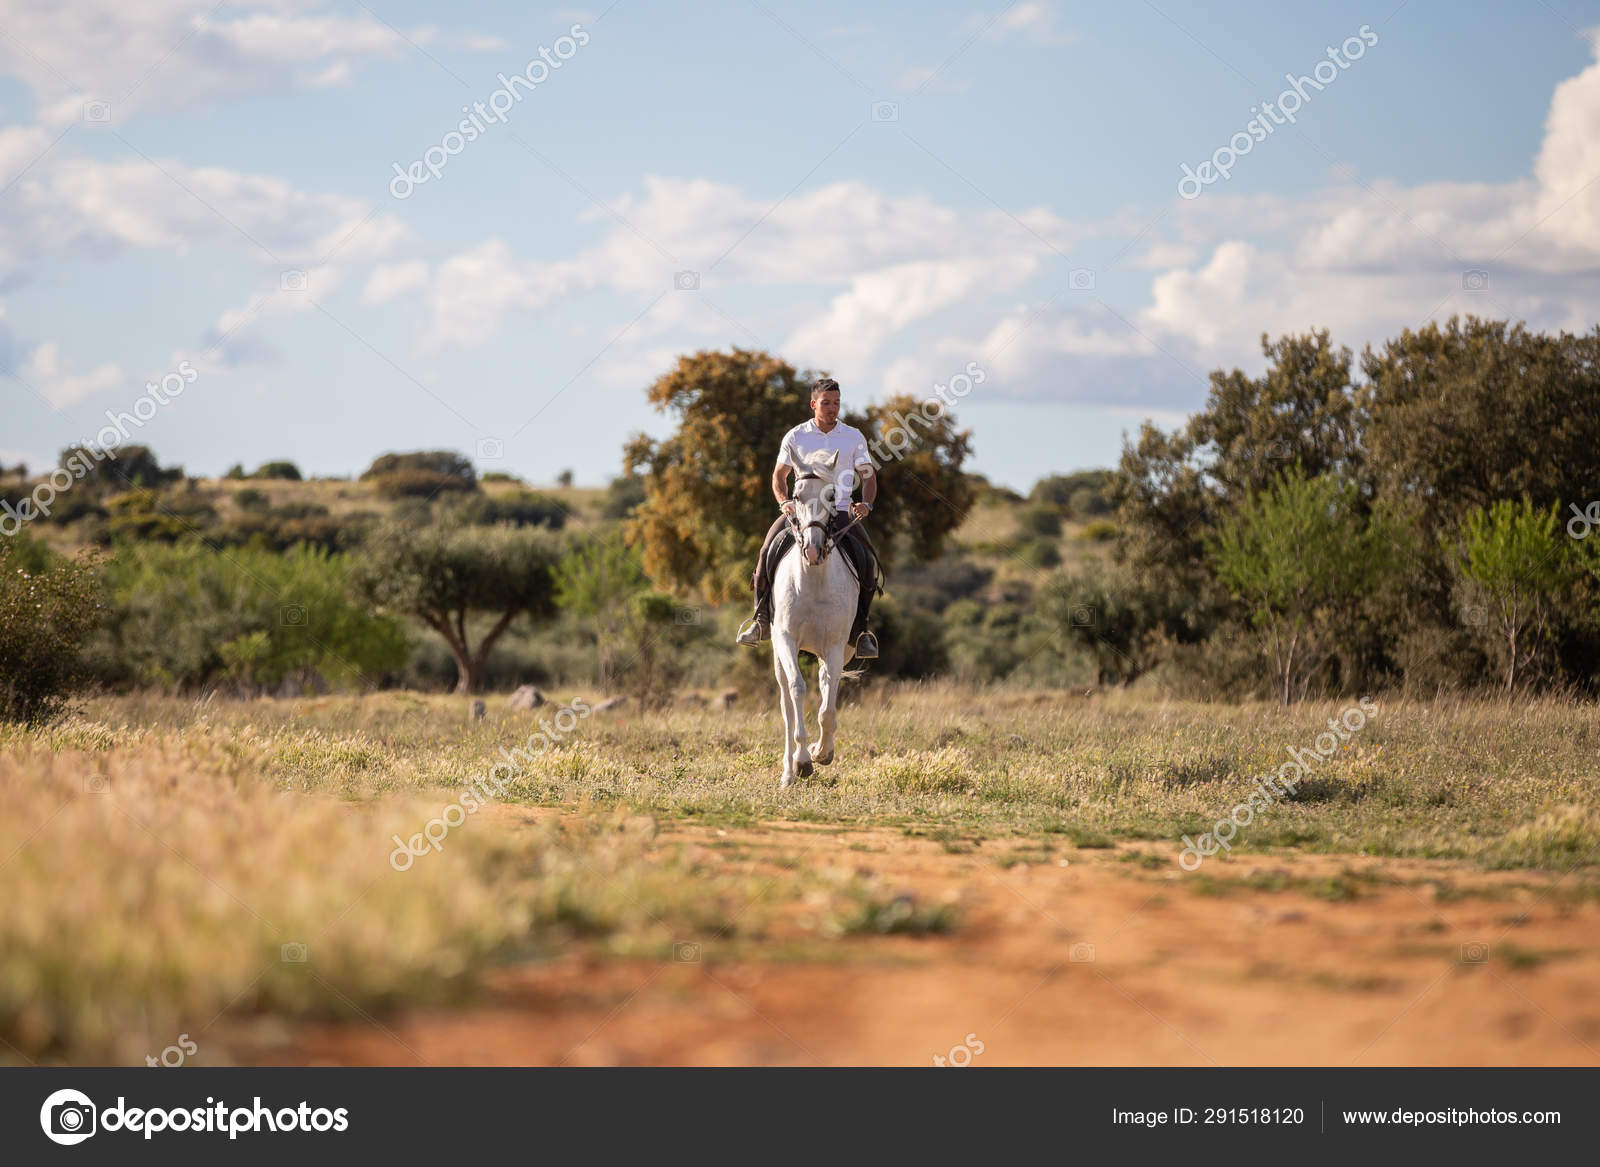 Young Guy Casual Outfit Riding White Horse Sandy Road Stock Photo C Pablobenii 291518120